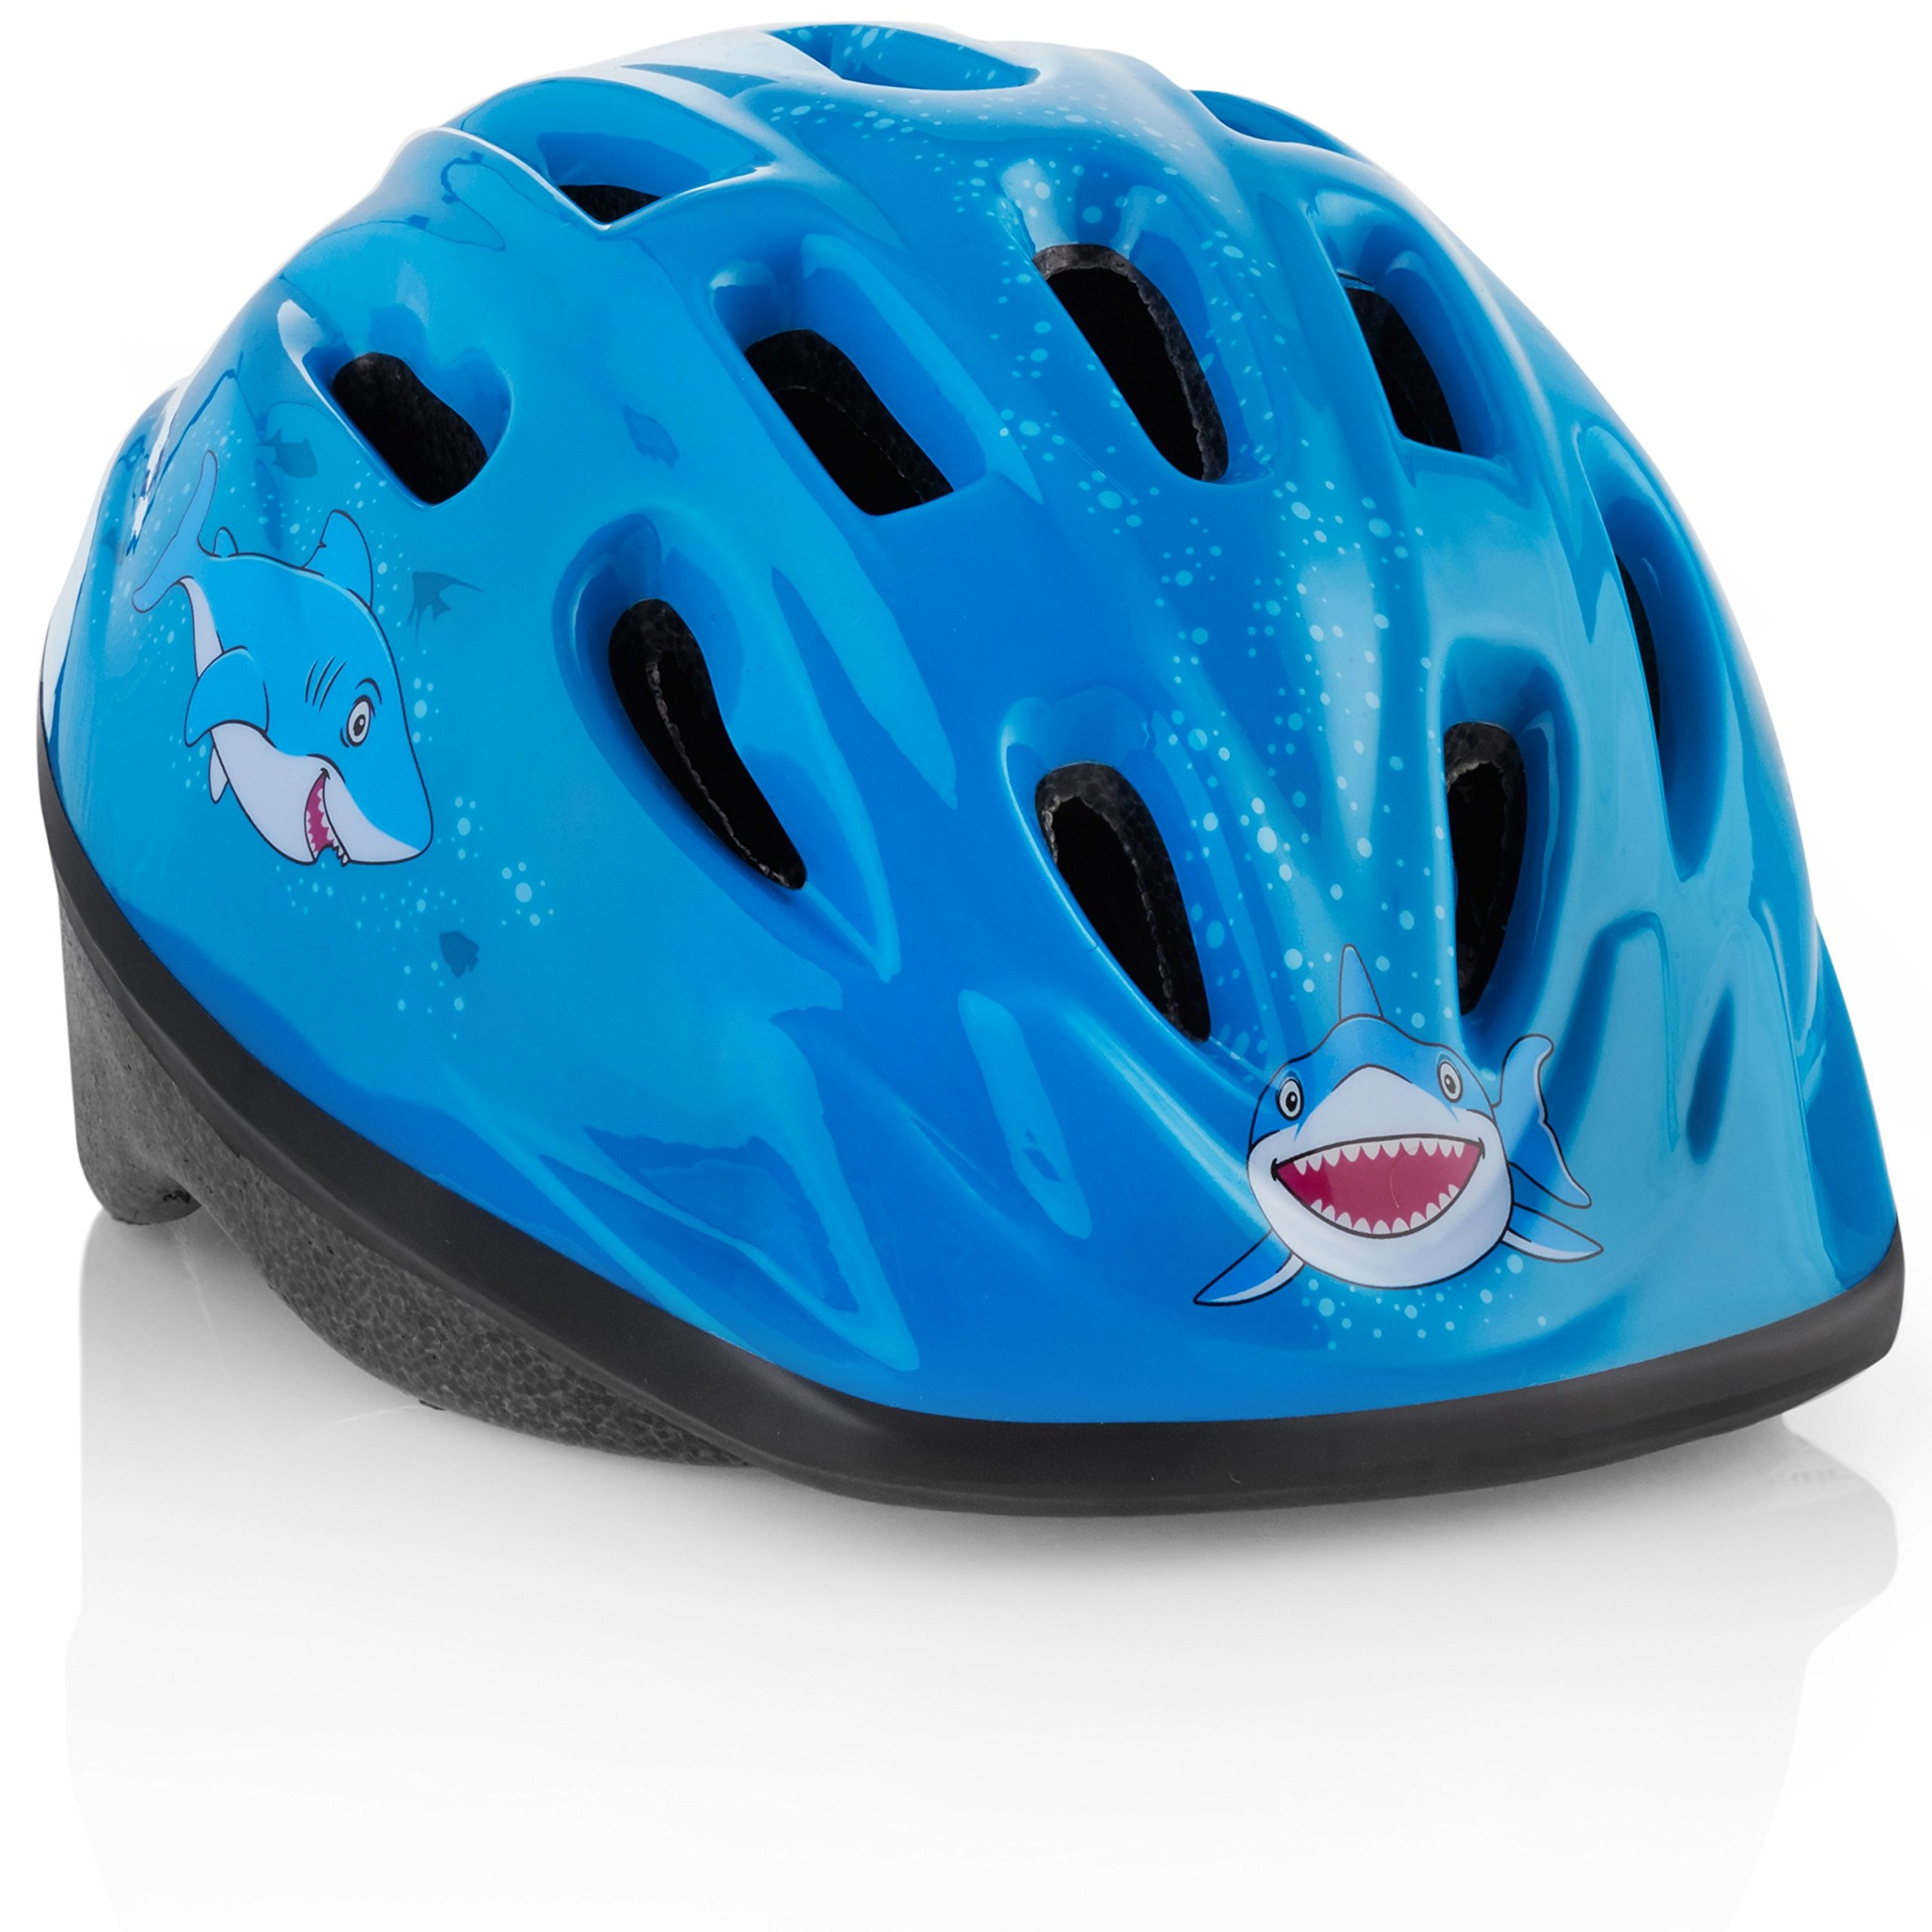 TeamObsidian Kids Bike Helmet [ Blue Shark ] - Adjustable from Toddler to Youth Size, Ages 3-7 - Durable Kid Bicycle Helmets with Fun Aquatic Design Boys Will Love - CPSC Certified - FunWave by TeamObsidian